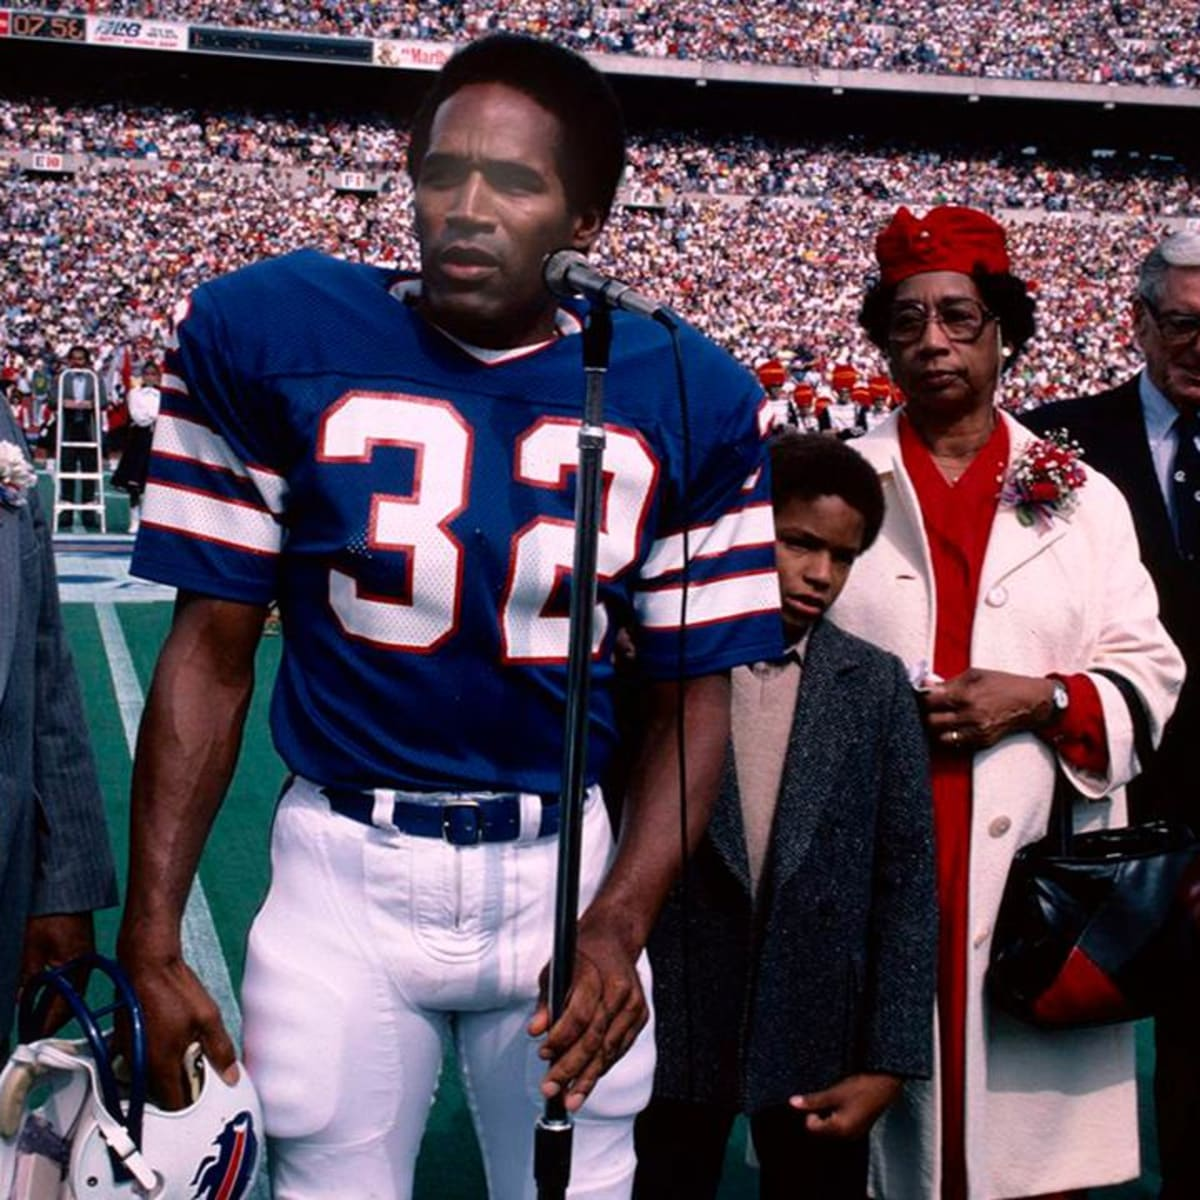 Should Bills Have Issued O.J. Simpson's No. 32 Jersey to Recently Signed RB?